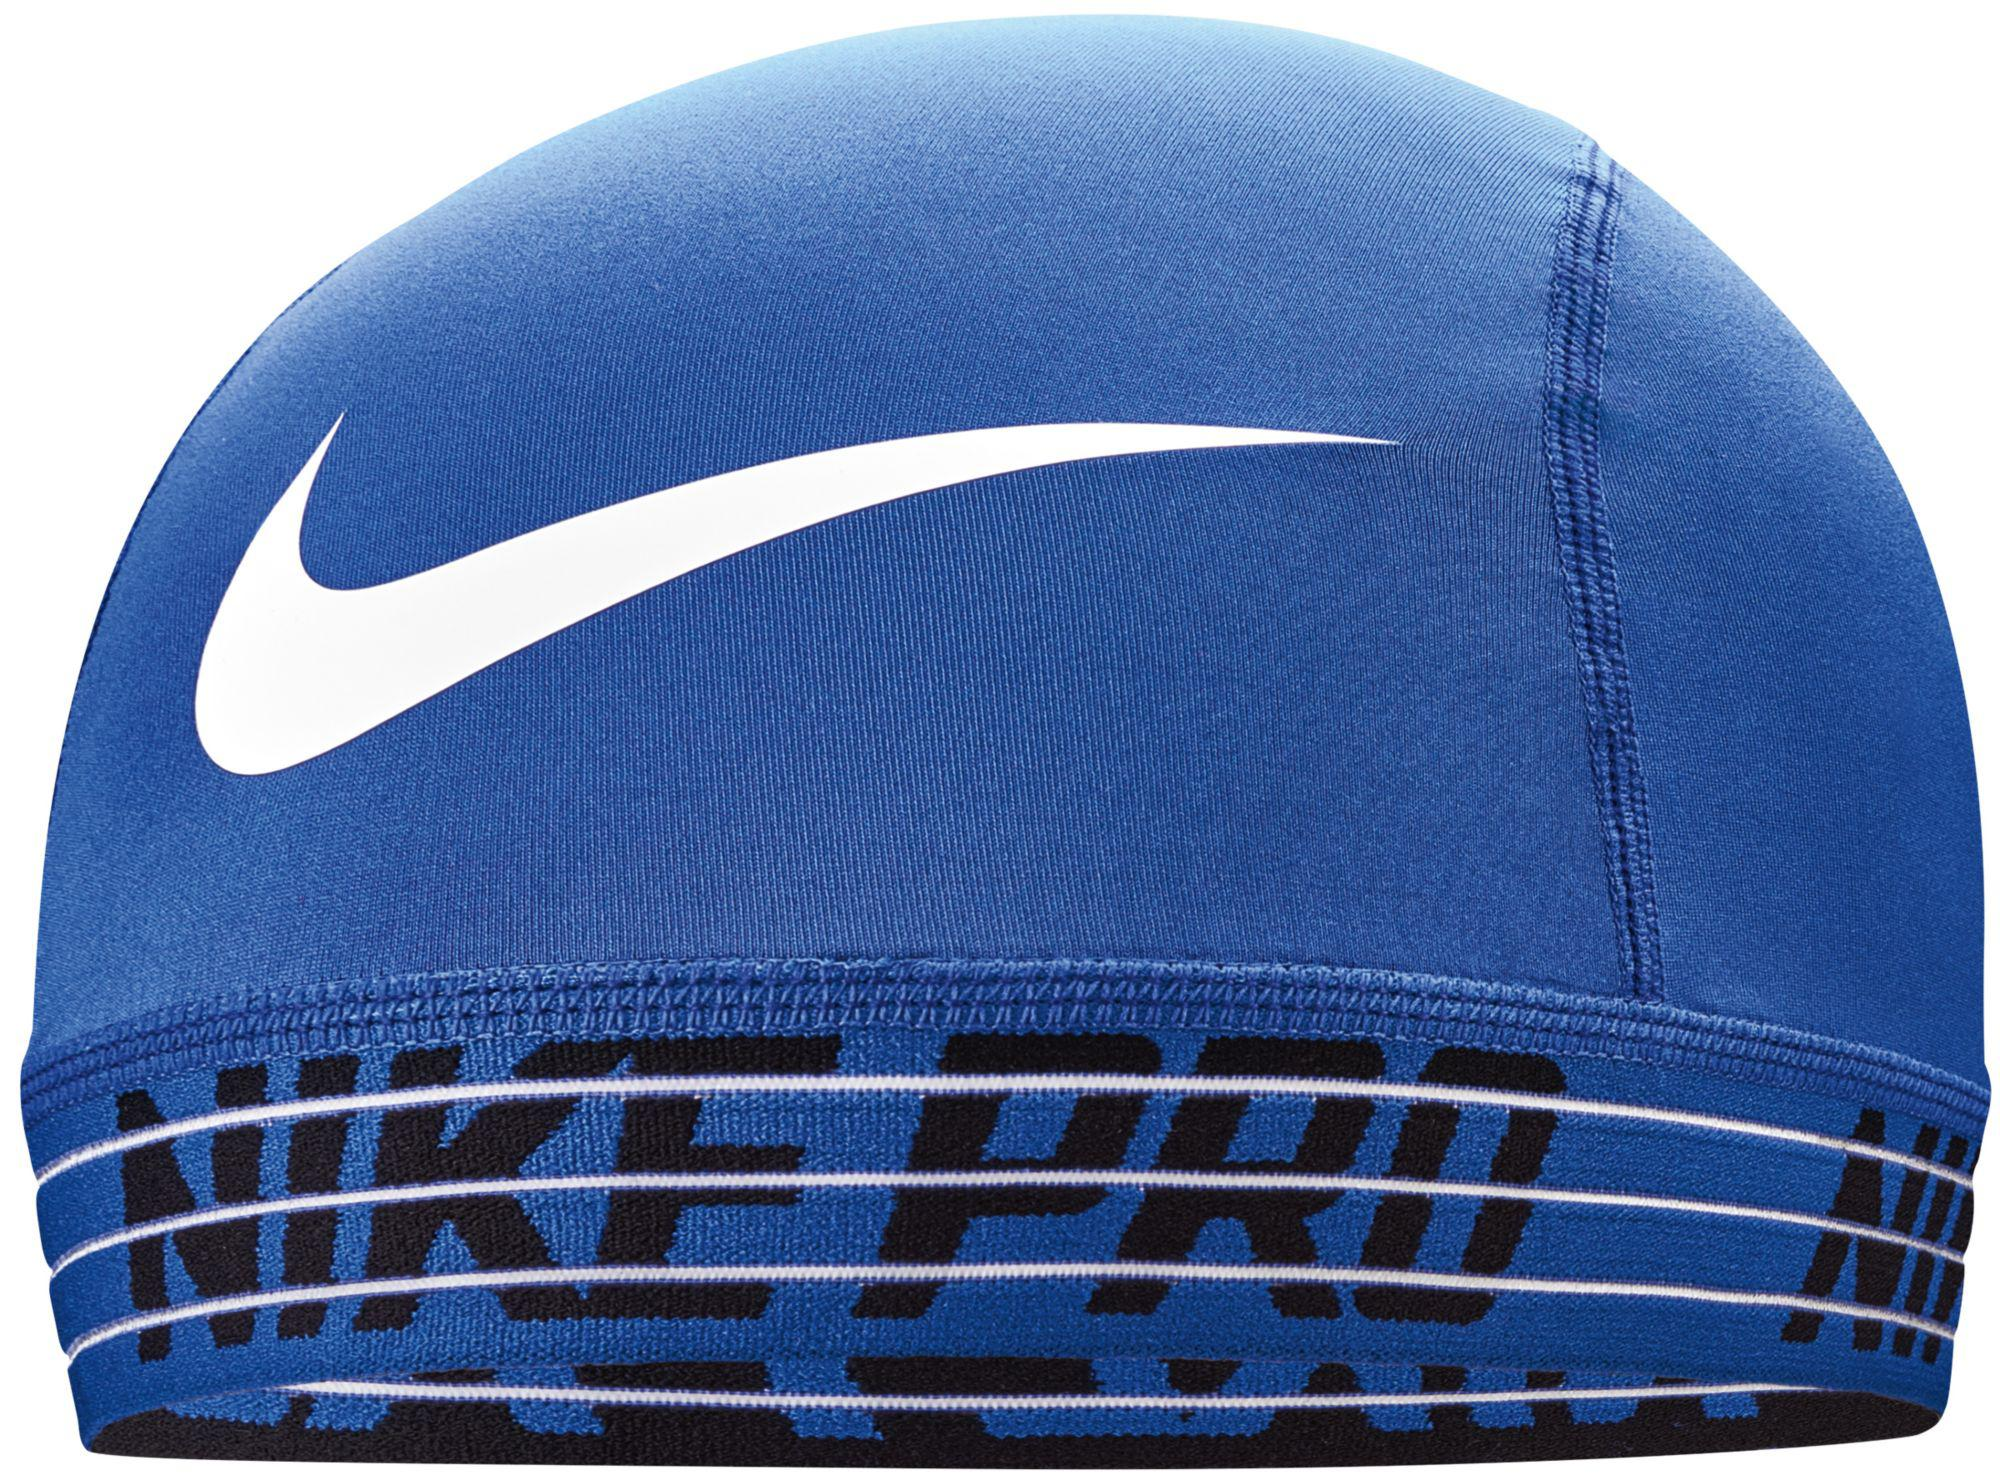 Lyst - Nike Pro Skull Cap 2.0 in Blue for Men 52cf08d4d277